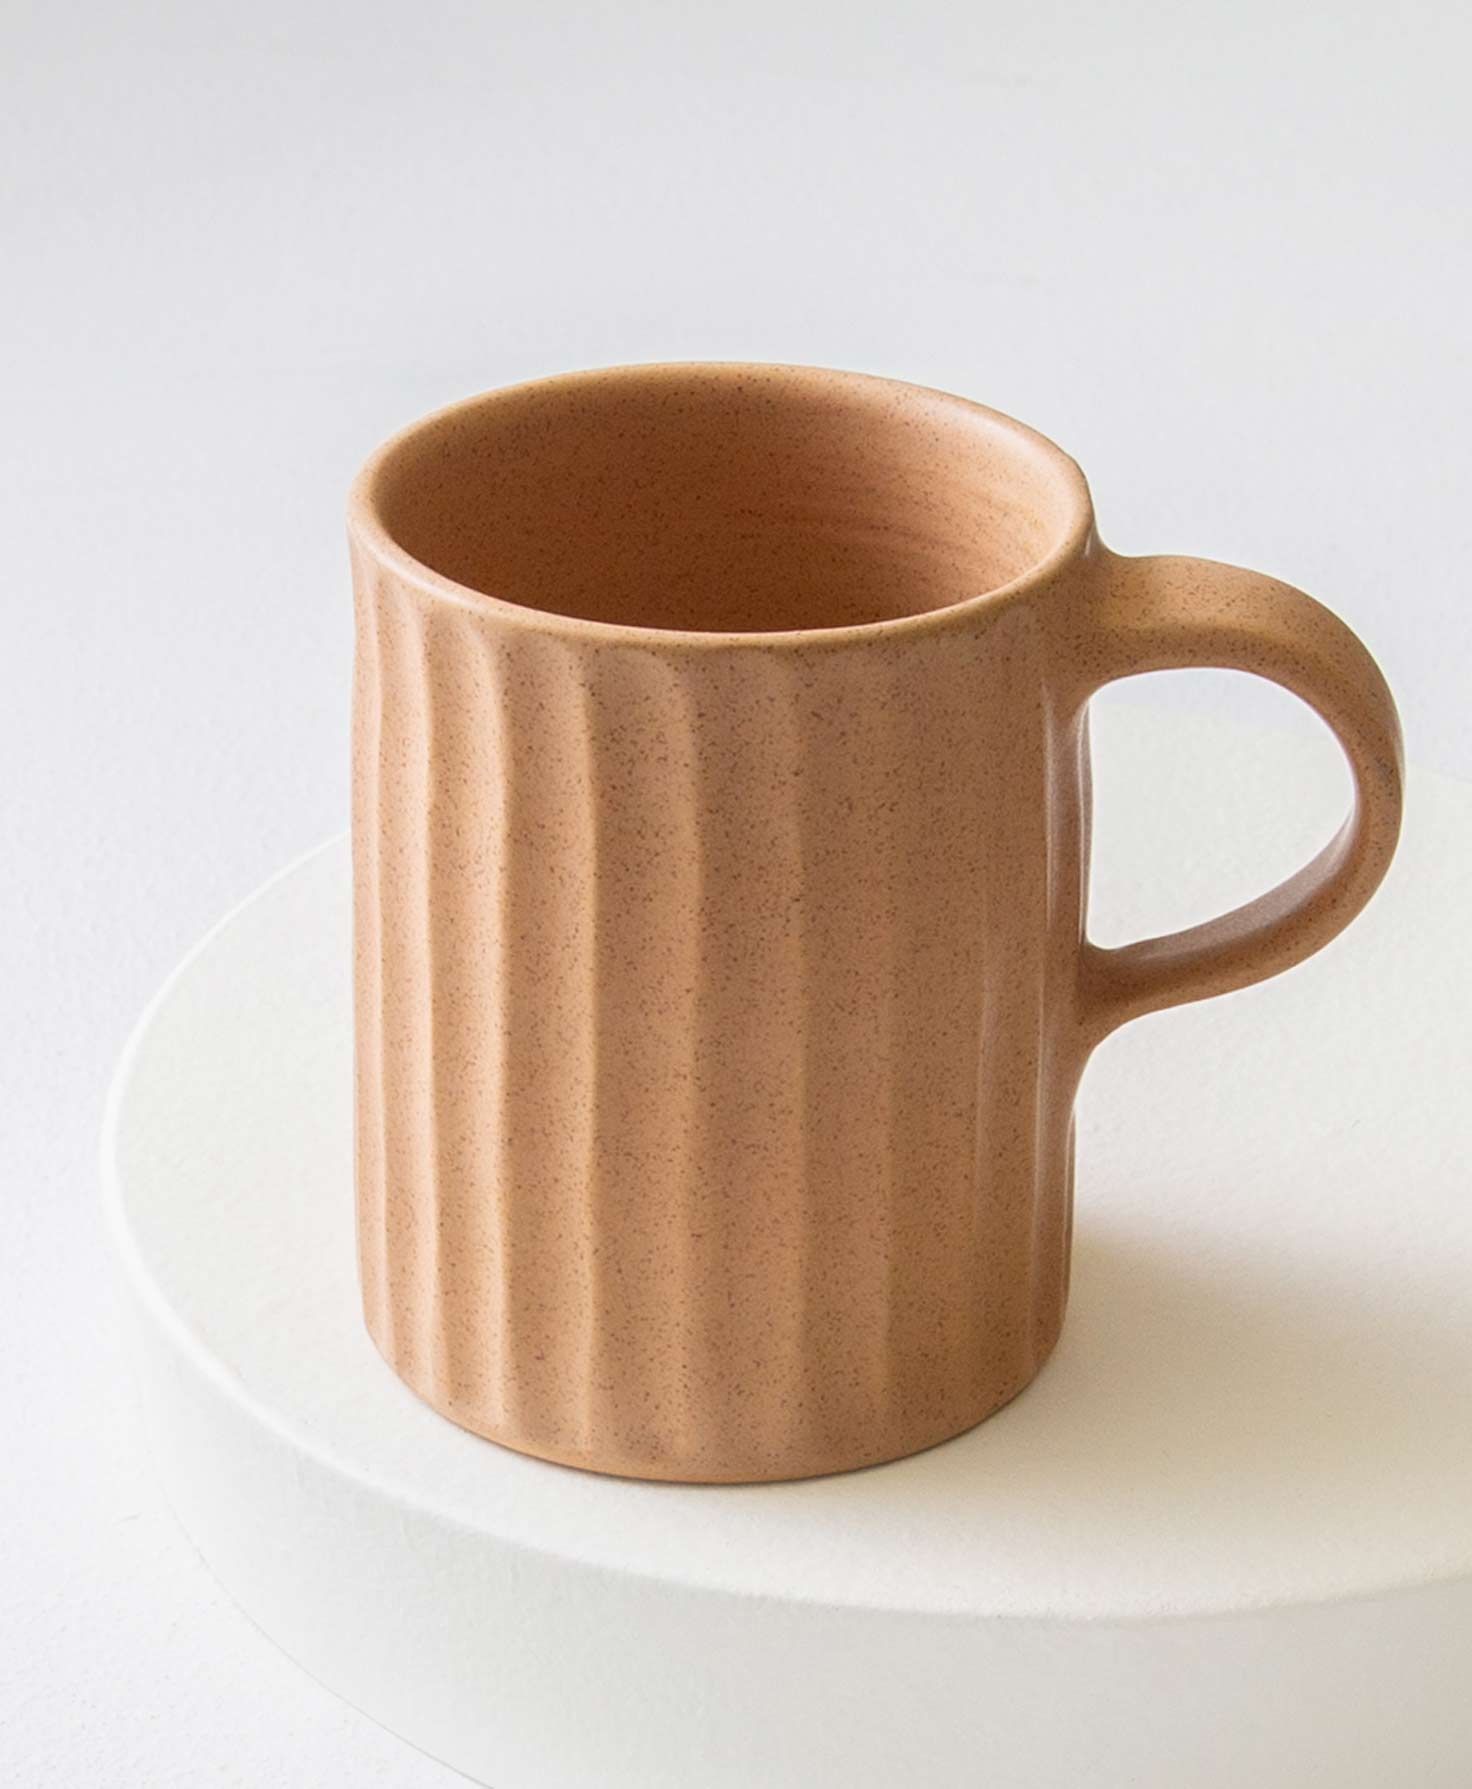 The Textured Ceramic Mug in Sand sits on a white surface. It is made of stoneware in a peachy sand shade and has a natural, handmade texture. All the way around the mug, vertical indentations run from the top to the bottom. The effect feels like someone ran their fingers from the top of the clay to the bottom, leaving regular rows of indentations. The mug has a handle made of the same peachy stoneware.